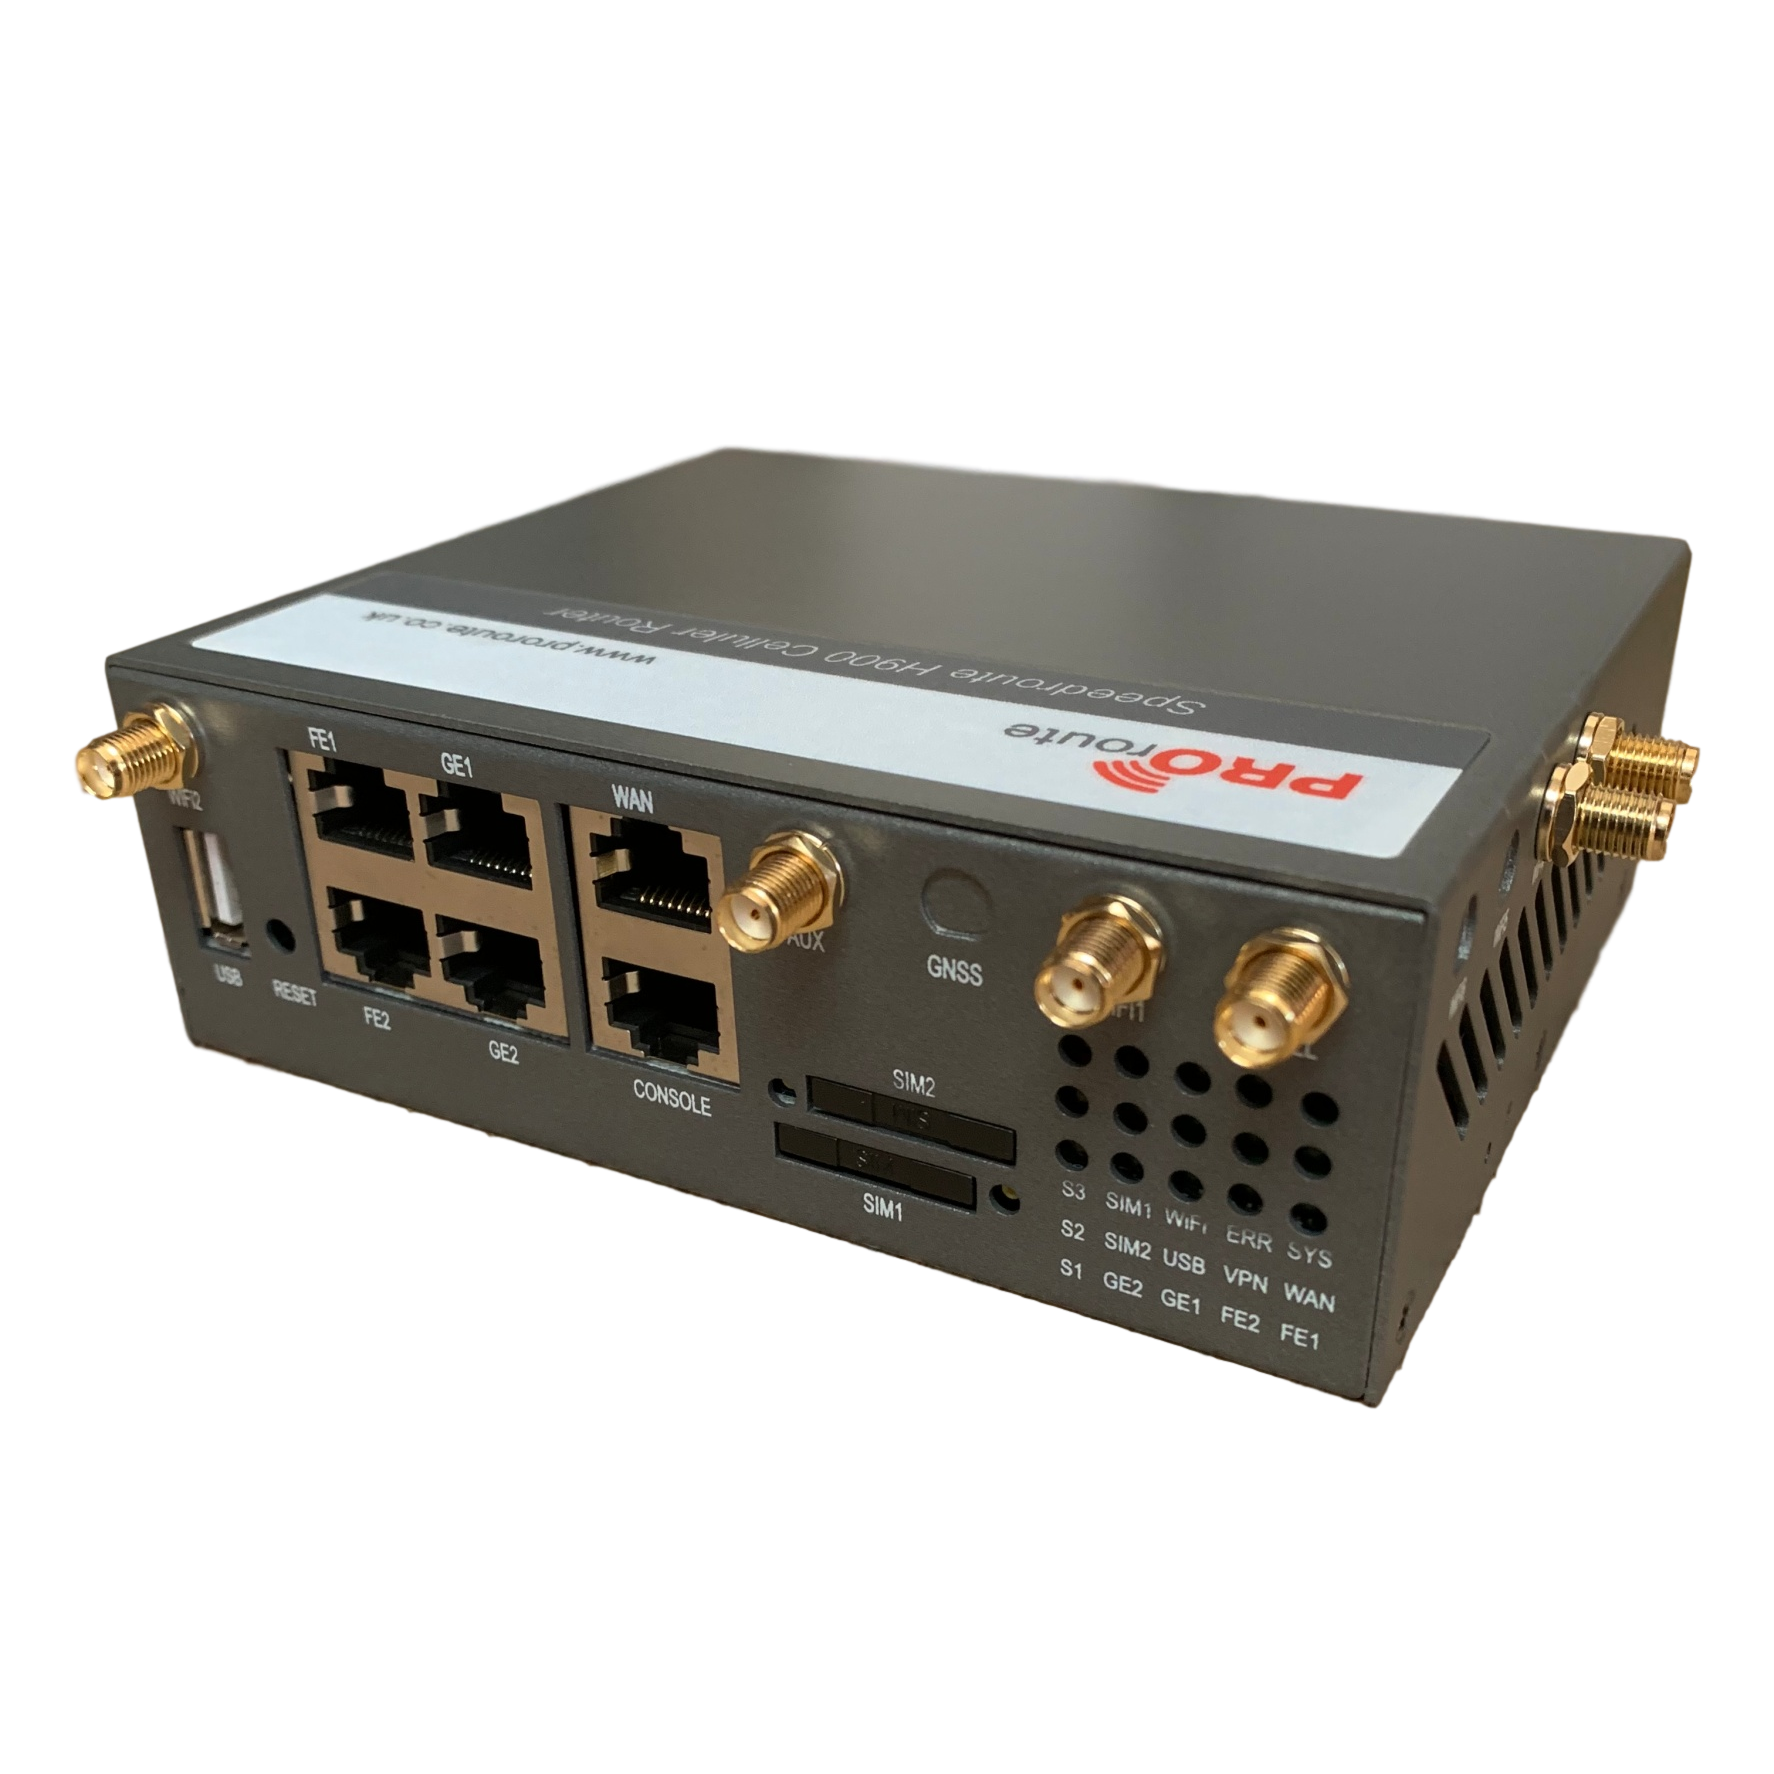 Proroute H900 CAT6 4G Router